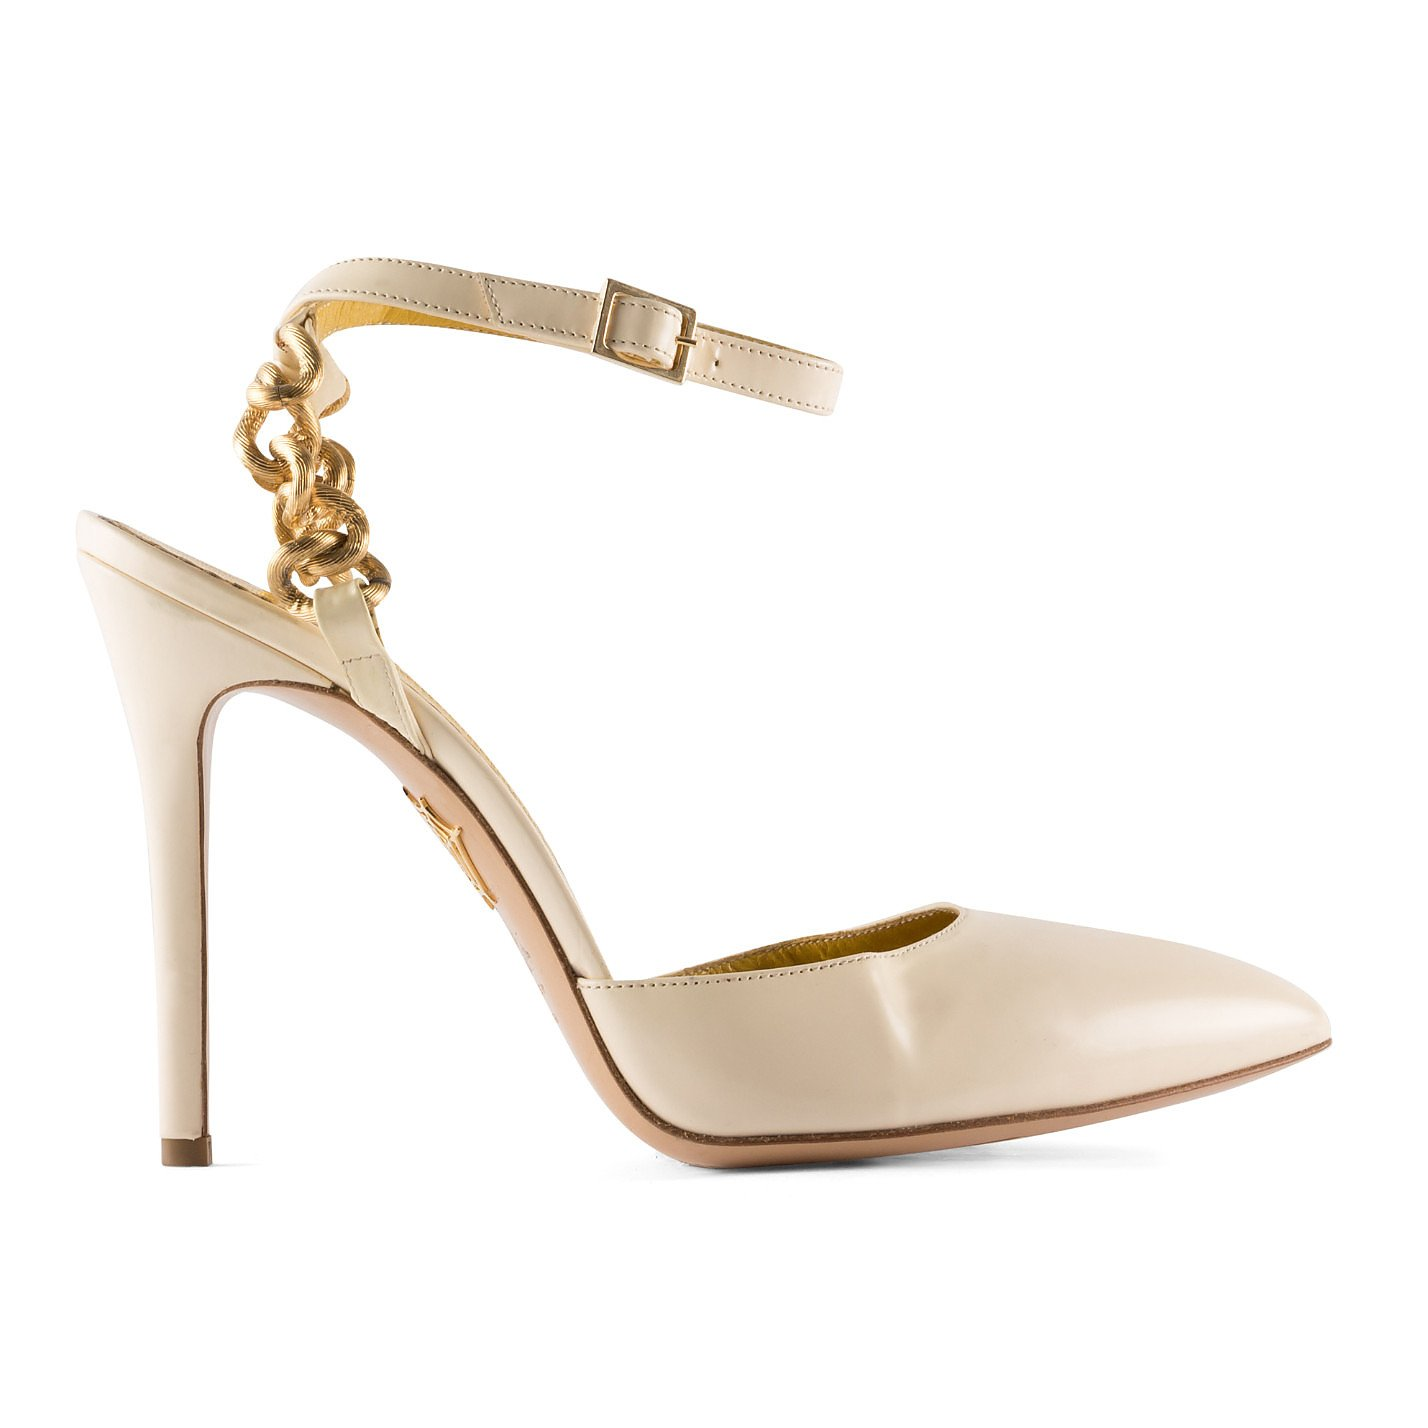 Charlotte Olympia Chain-Detail Pumps